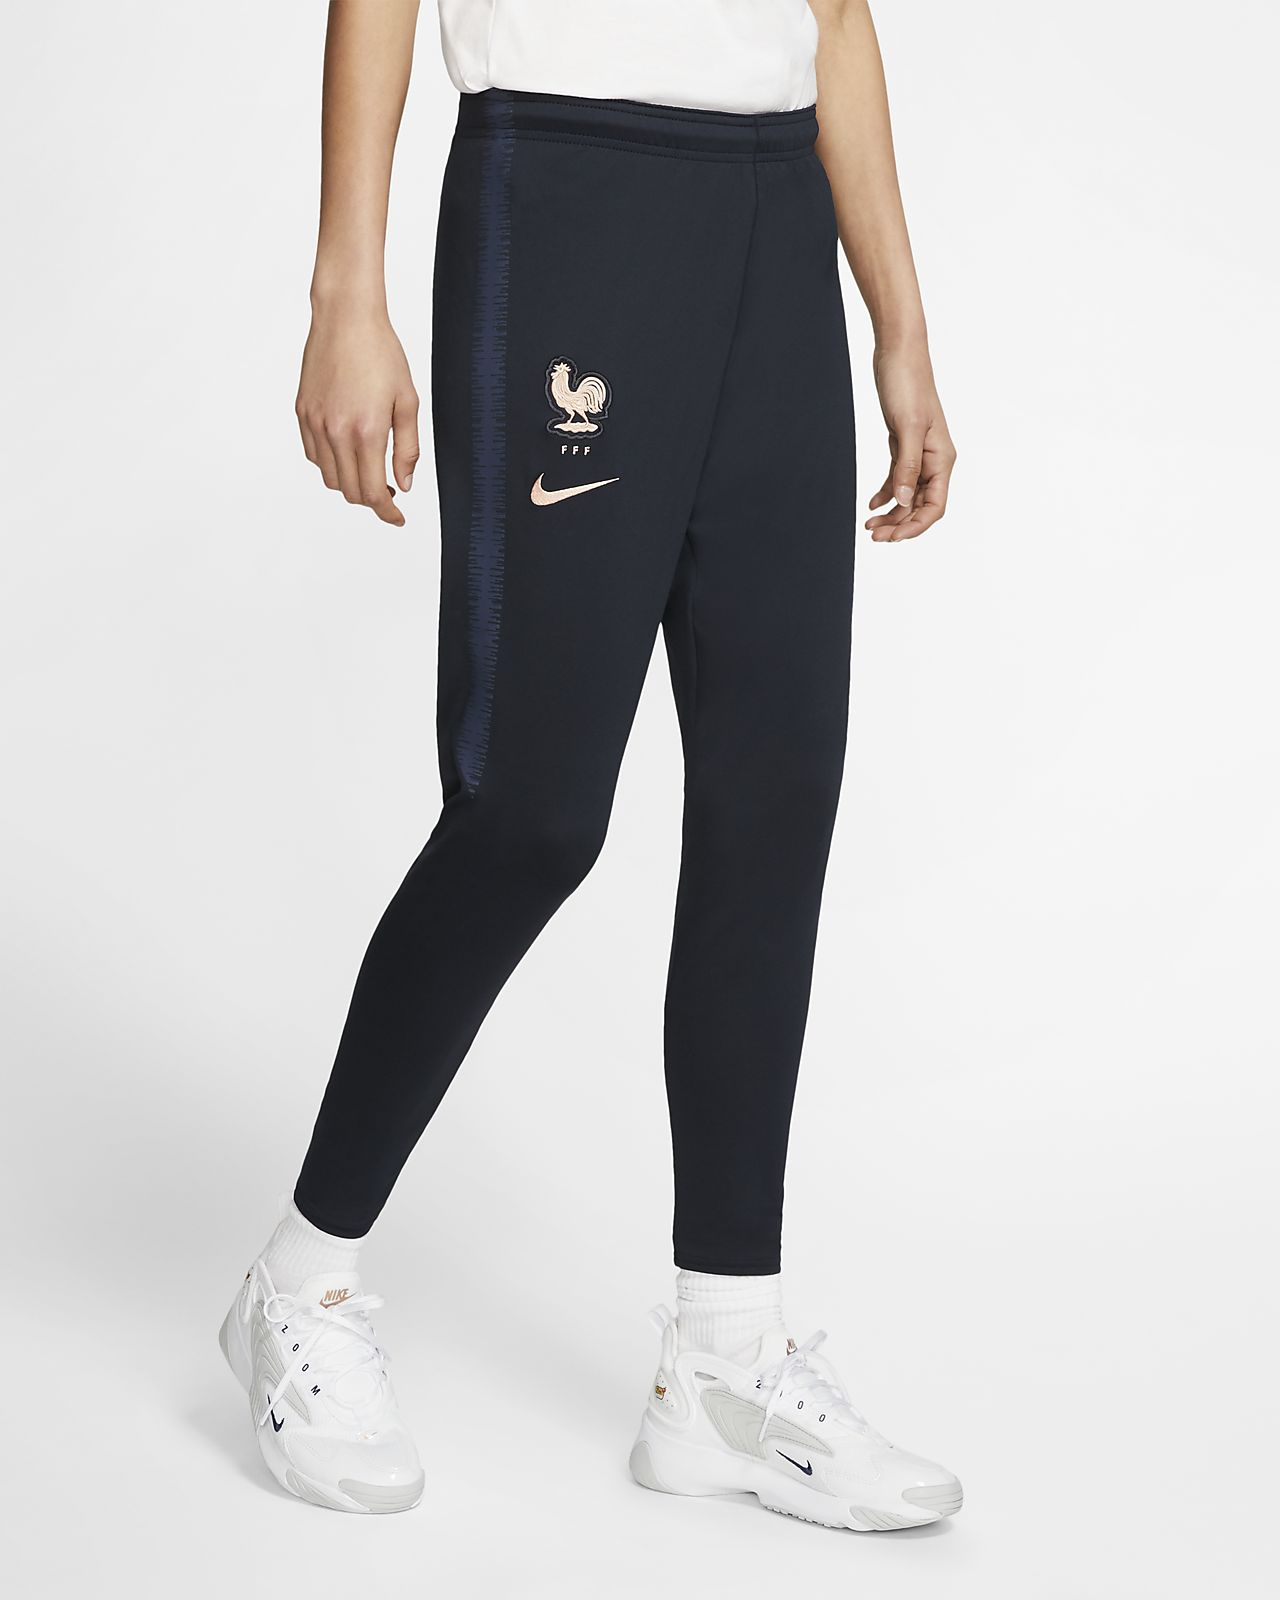 FFF Squad Women's Football Pants